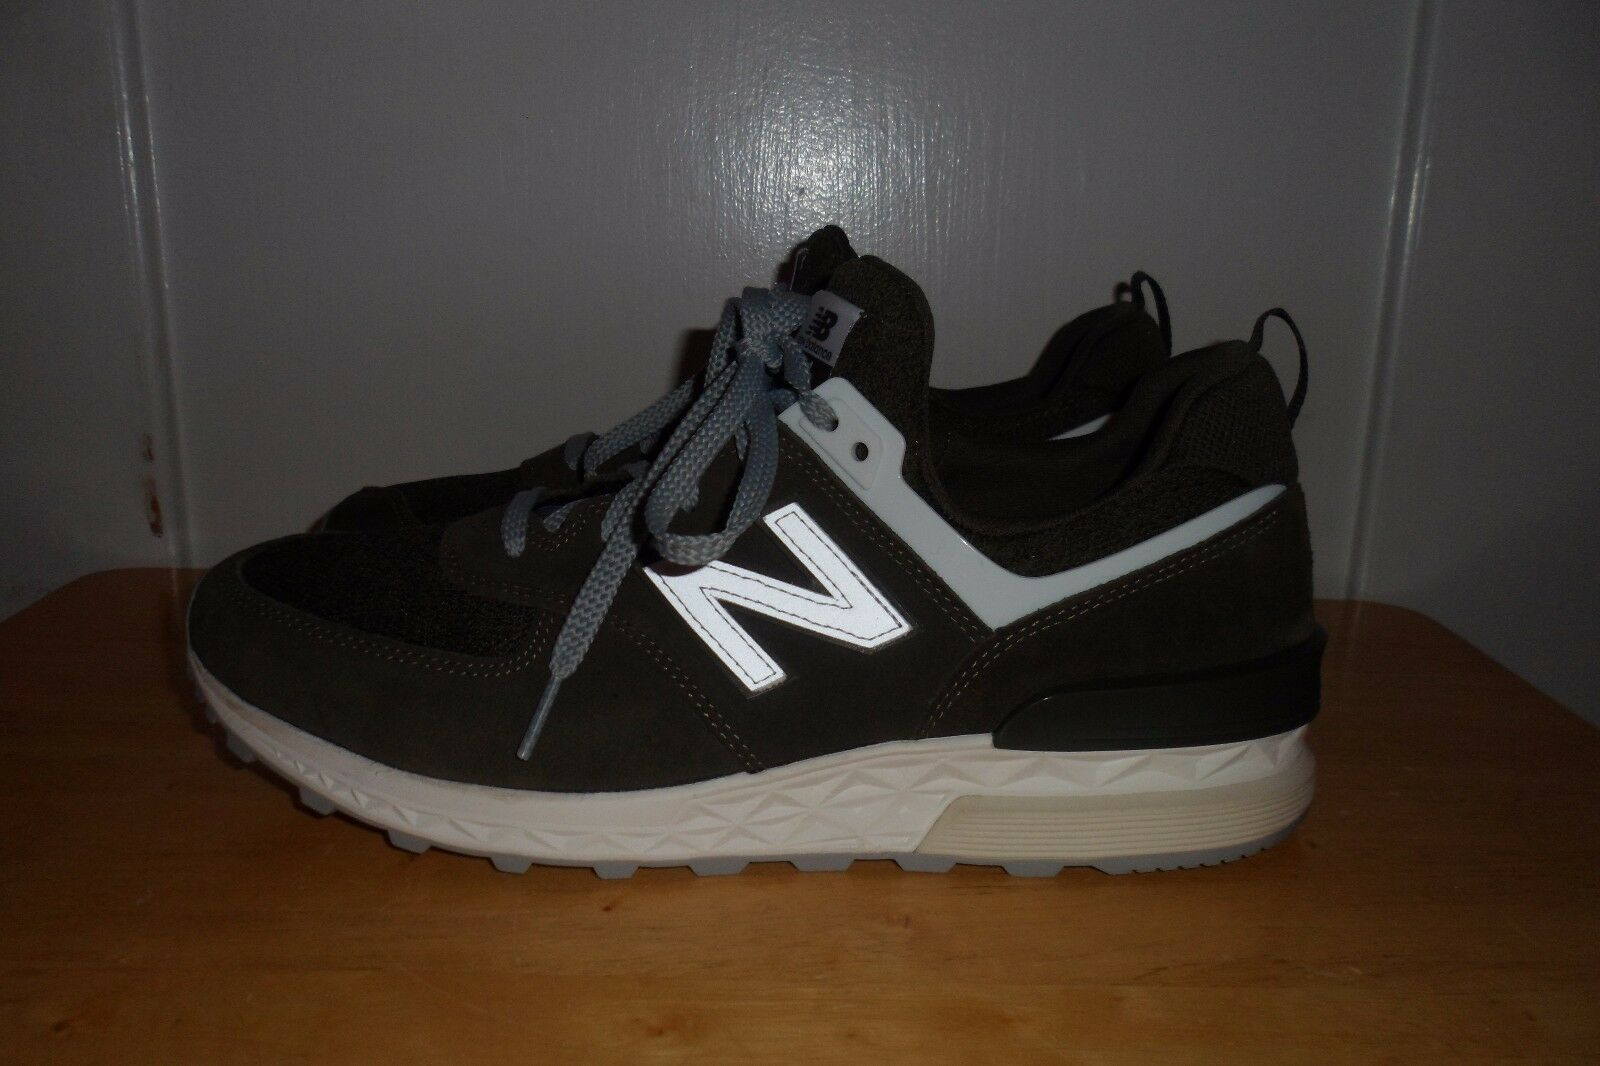 MUST SEE FABULOUS  109.00 2017 NWOT NEW BALANCE MS574BM MEN 11 D